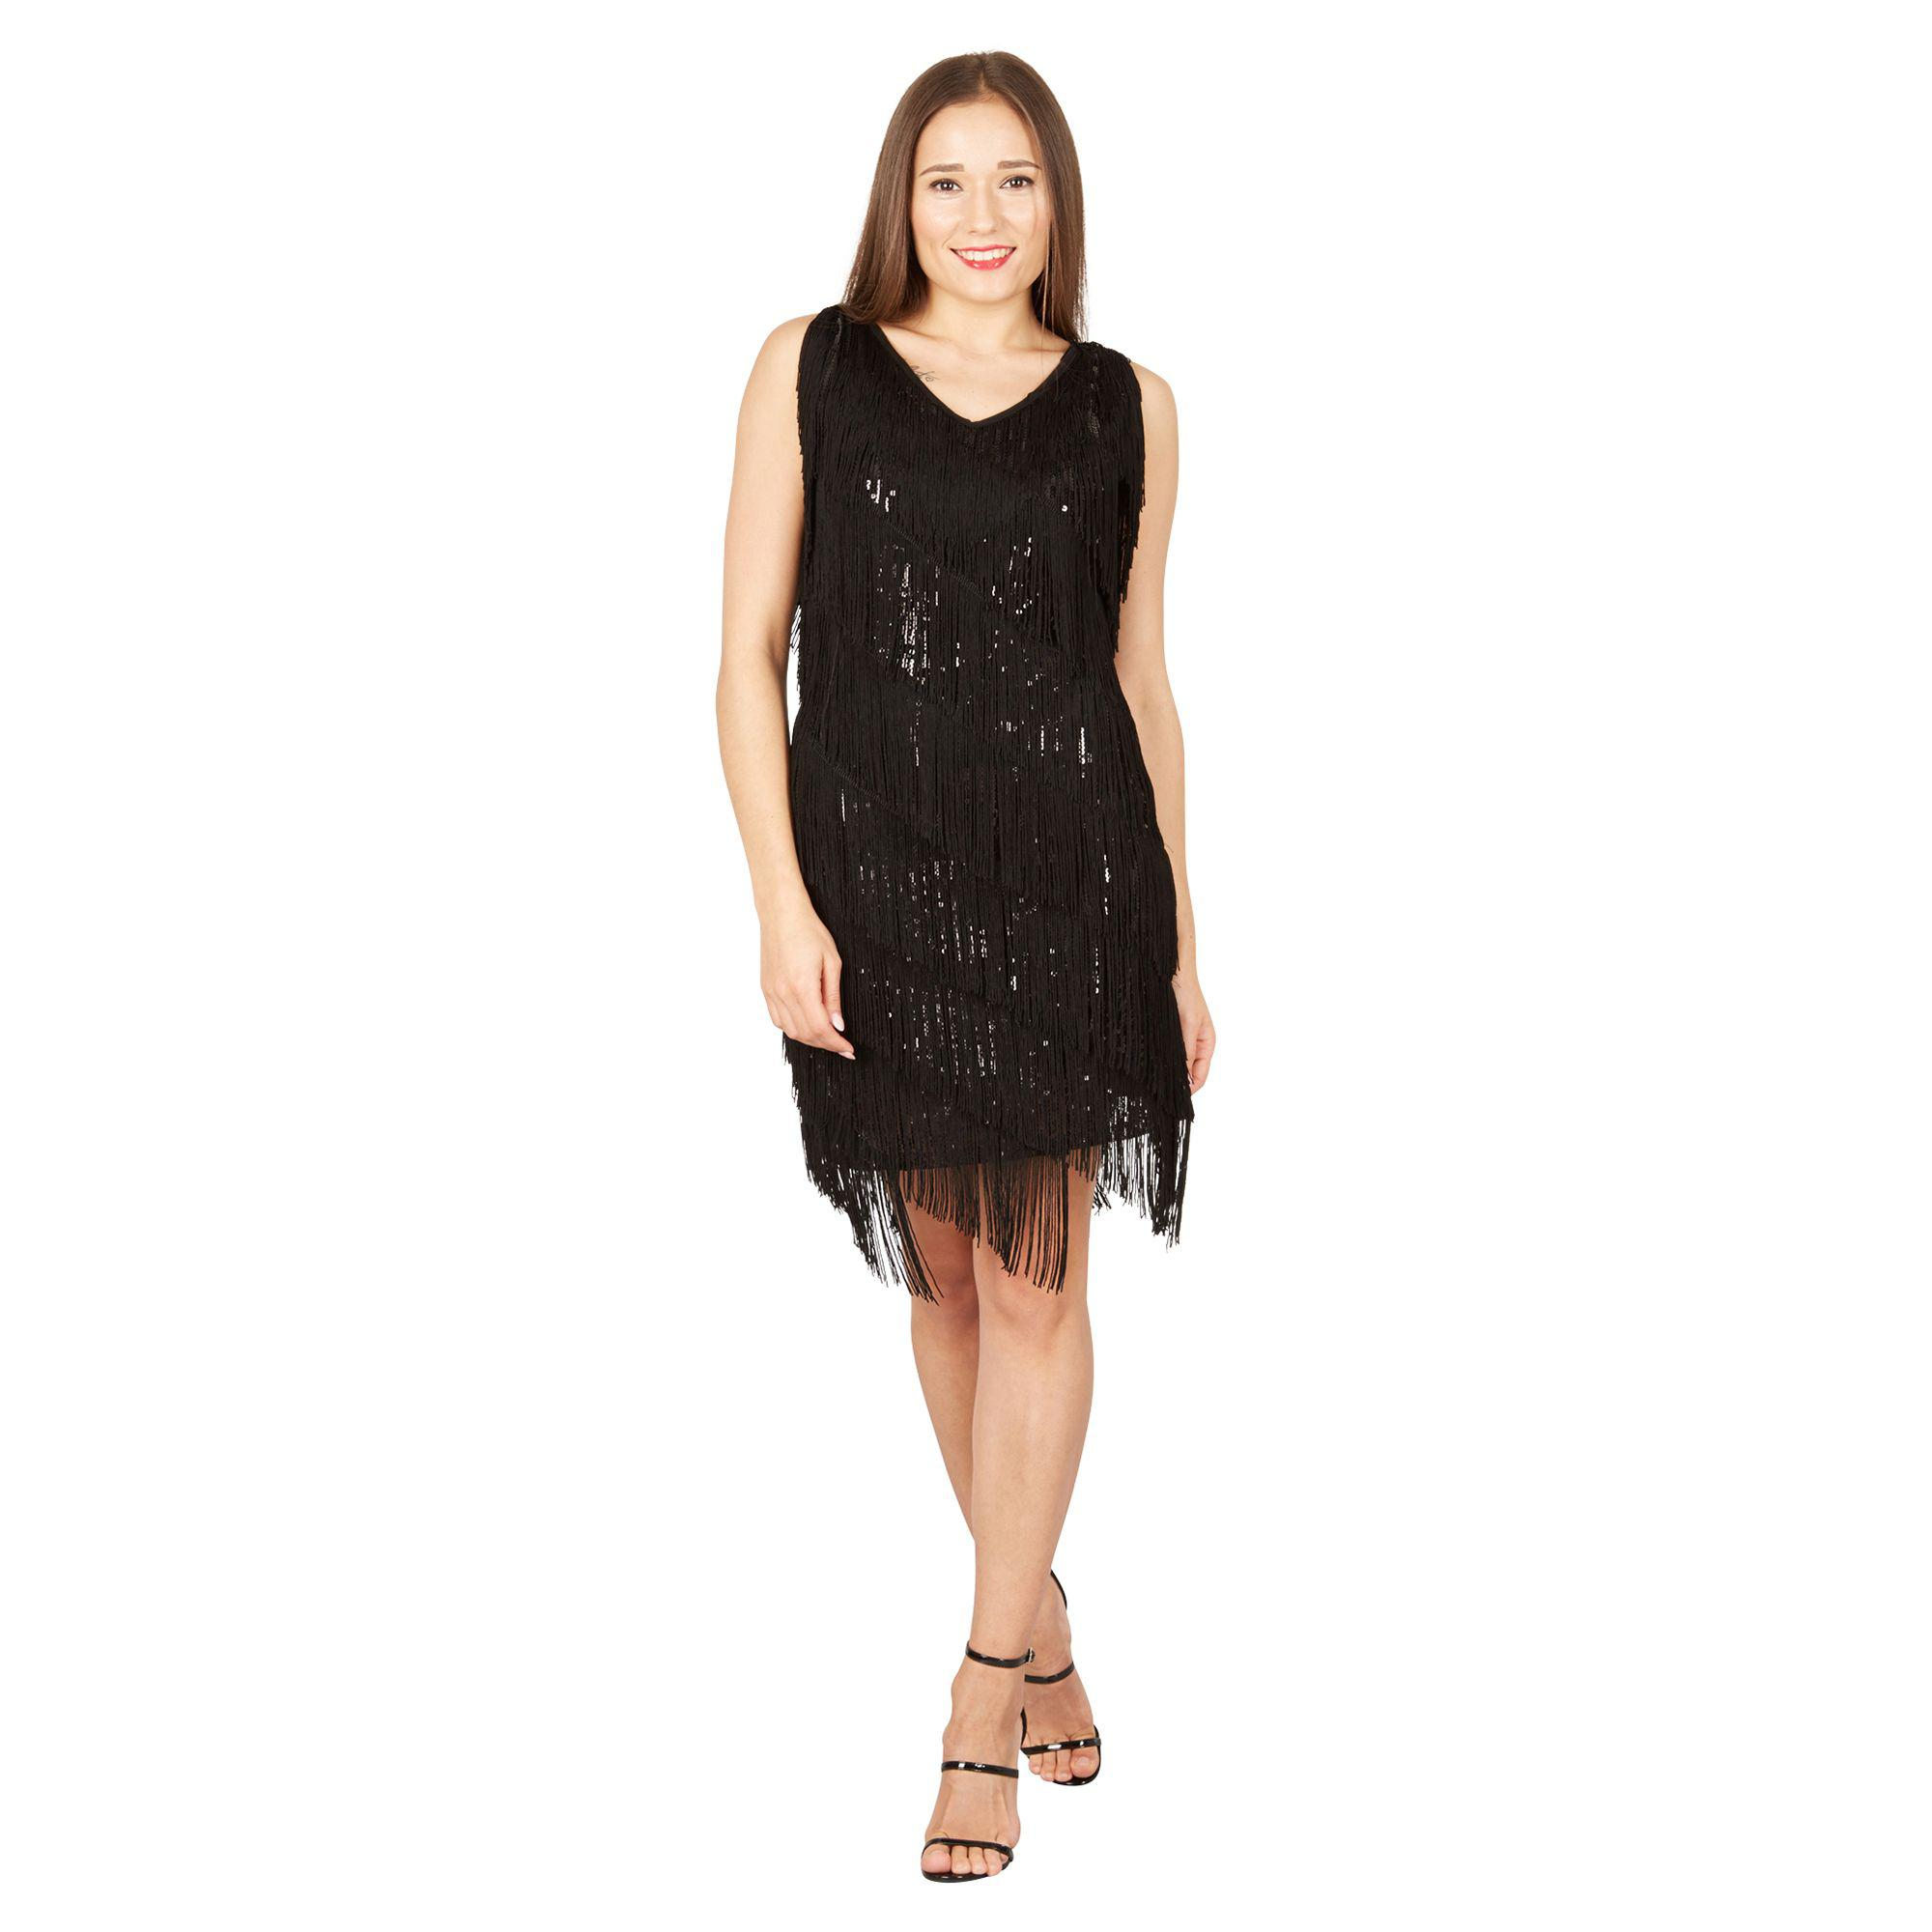 c836ce347e1 Izabel London Black Fringe Flapper Dress in Black - Lyst